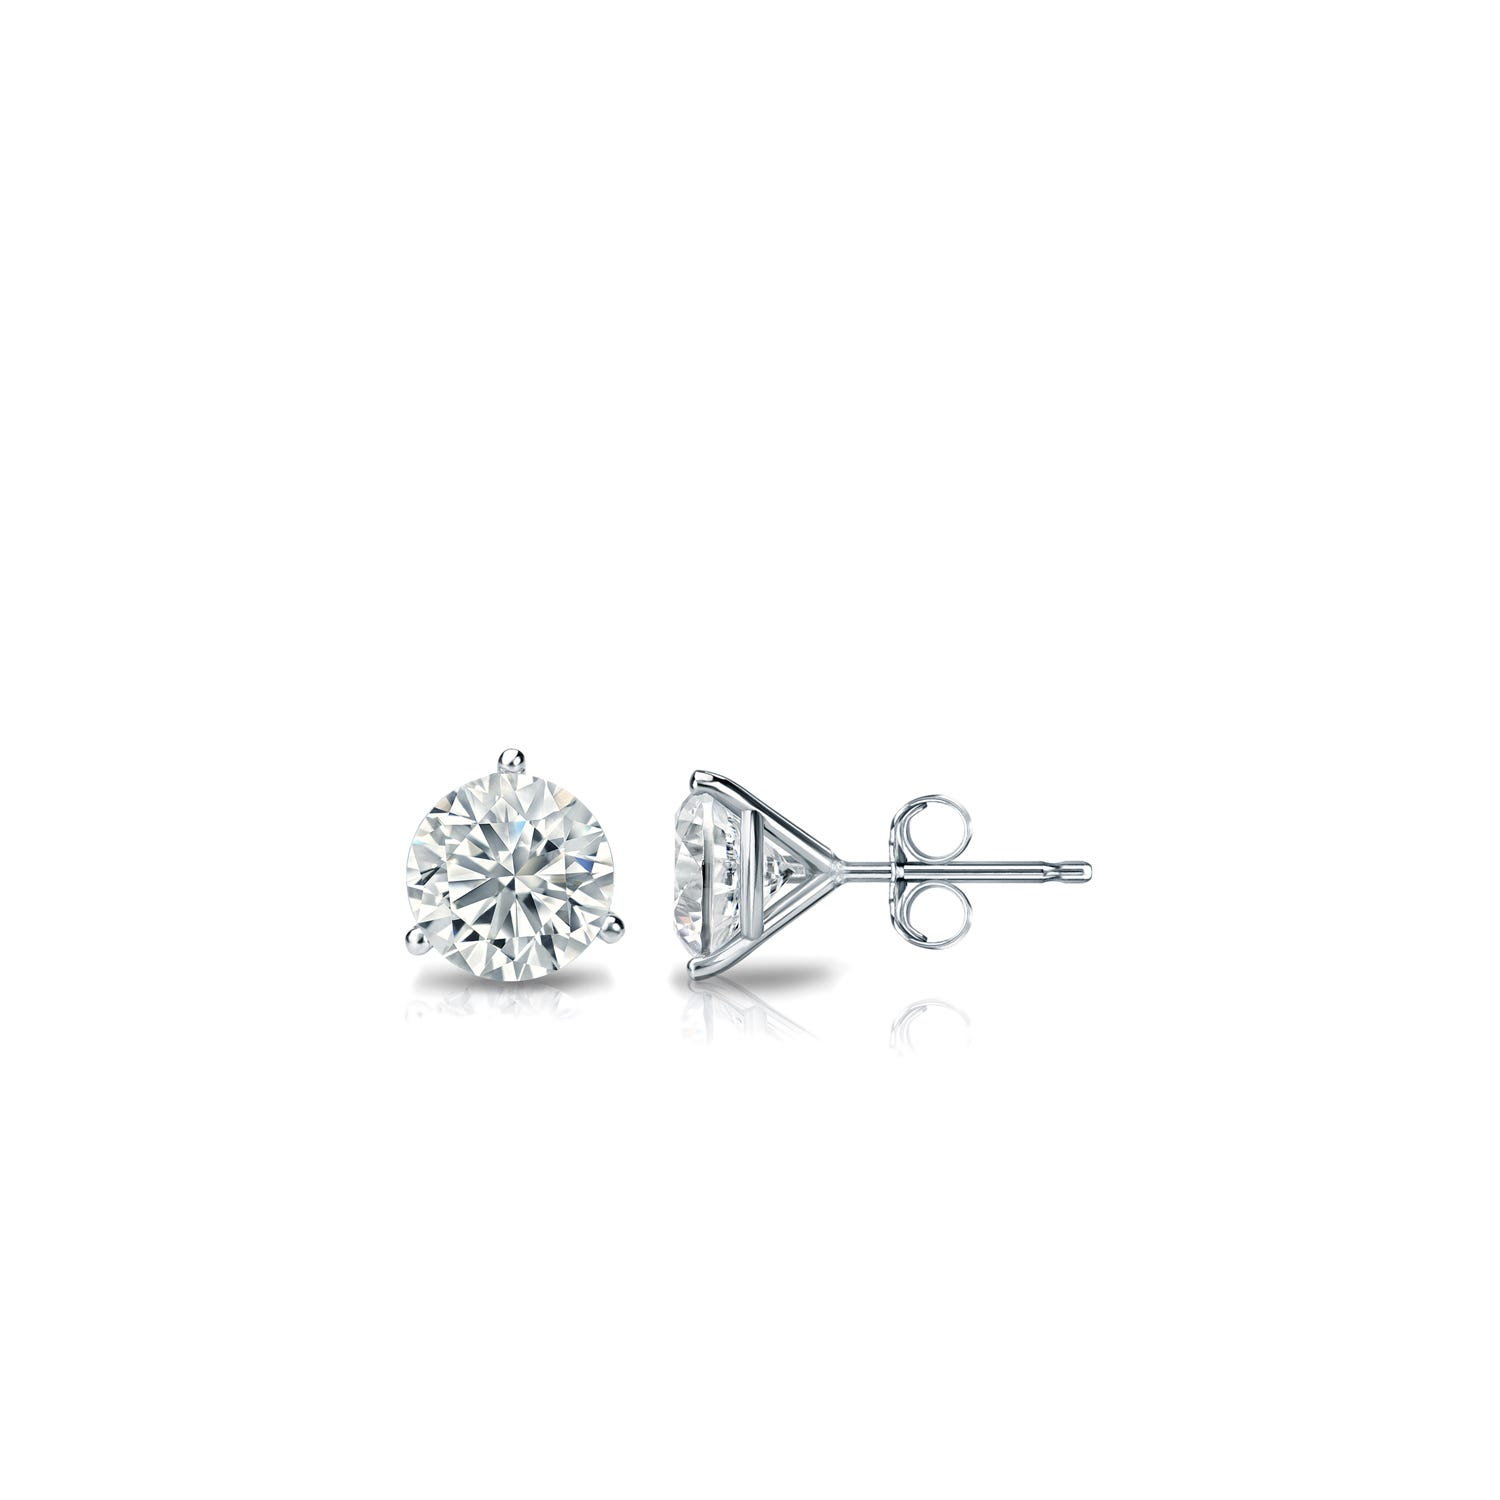 1/6 CTTW Round Diamond Solitaire Stud Earrings IJ I1 in Platinum 3-Prong Setting